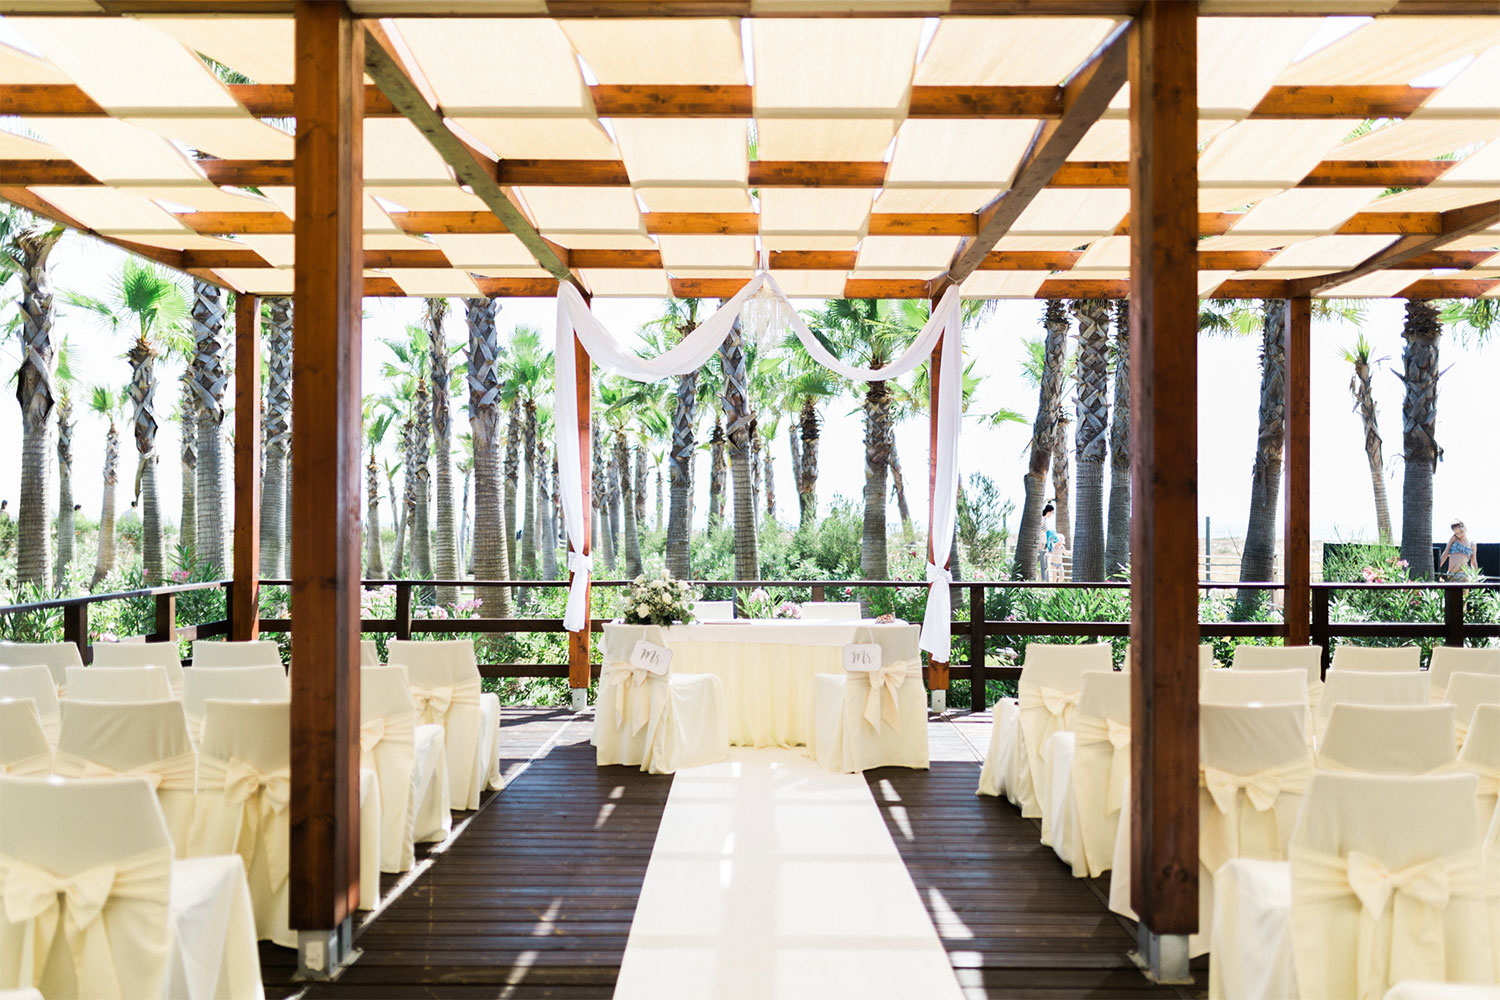 Algarve Palm Tree Gardens Ceremony & Reception | Ionian Weddings